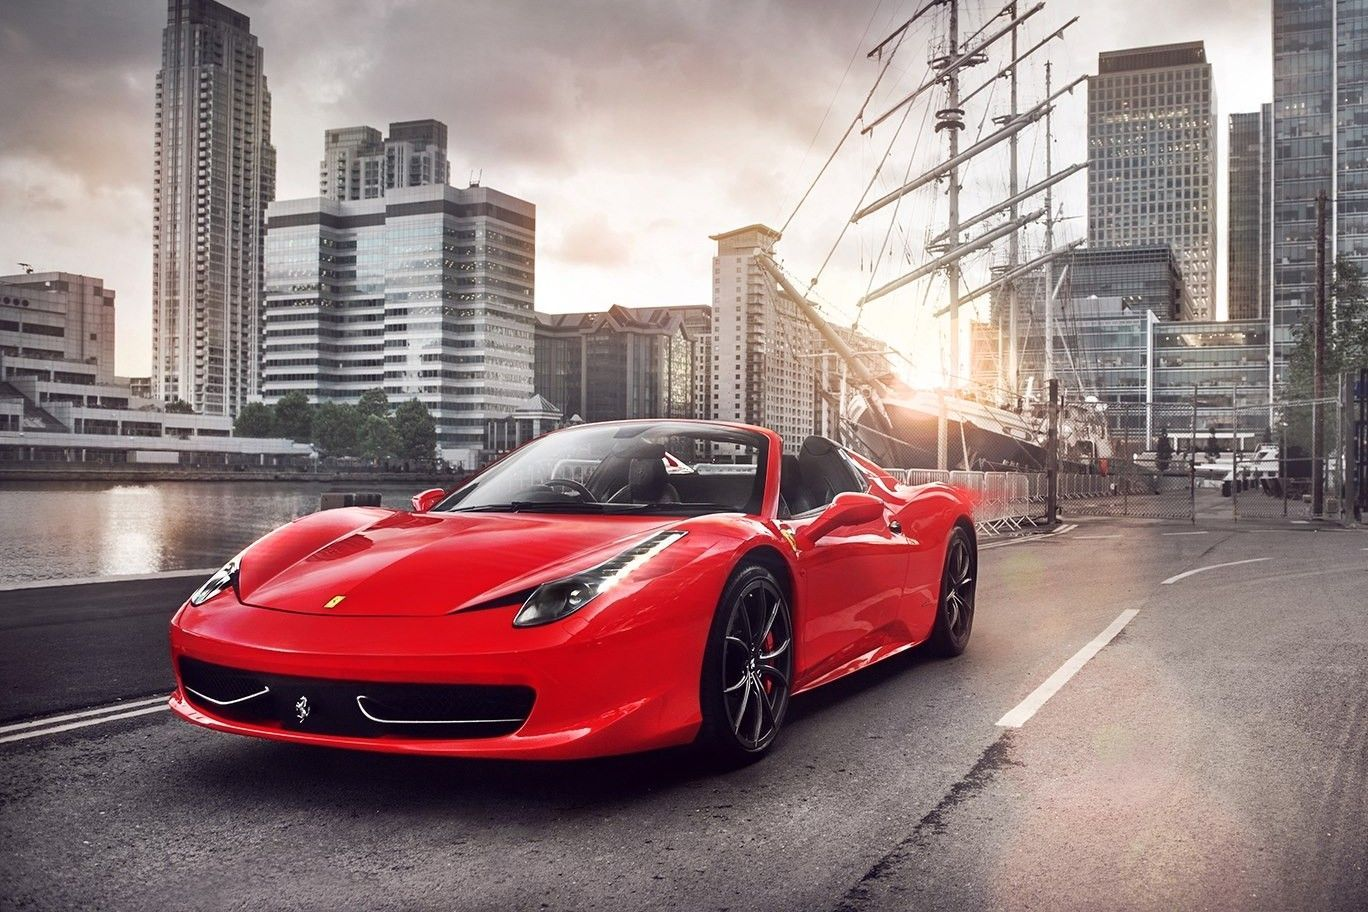 1368x912 - Ferrari 458 Italia Wallpapers 23